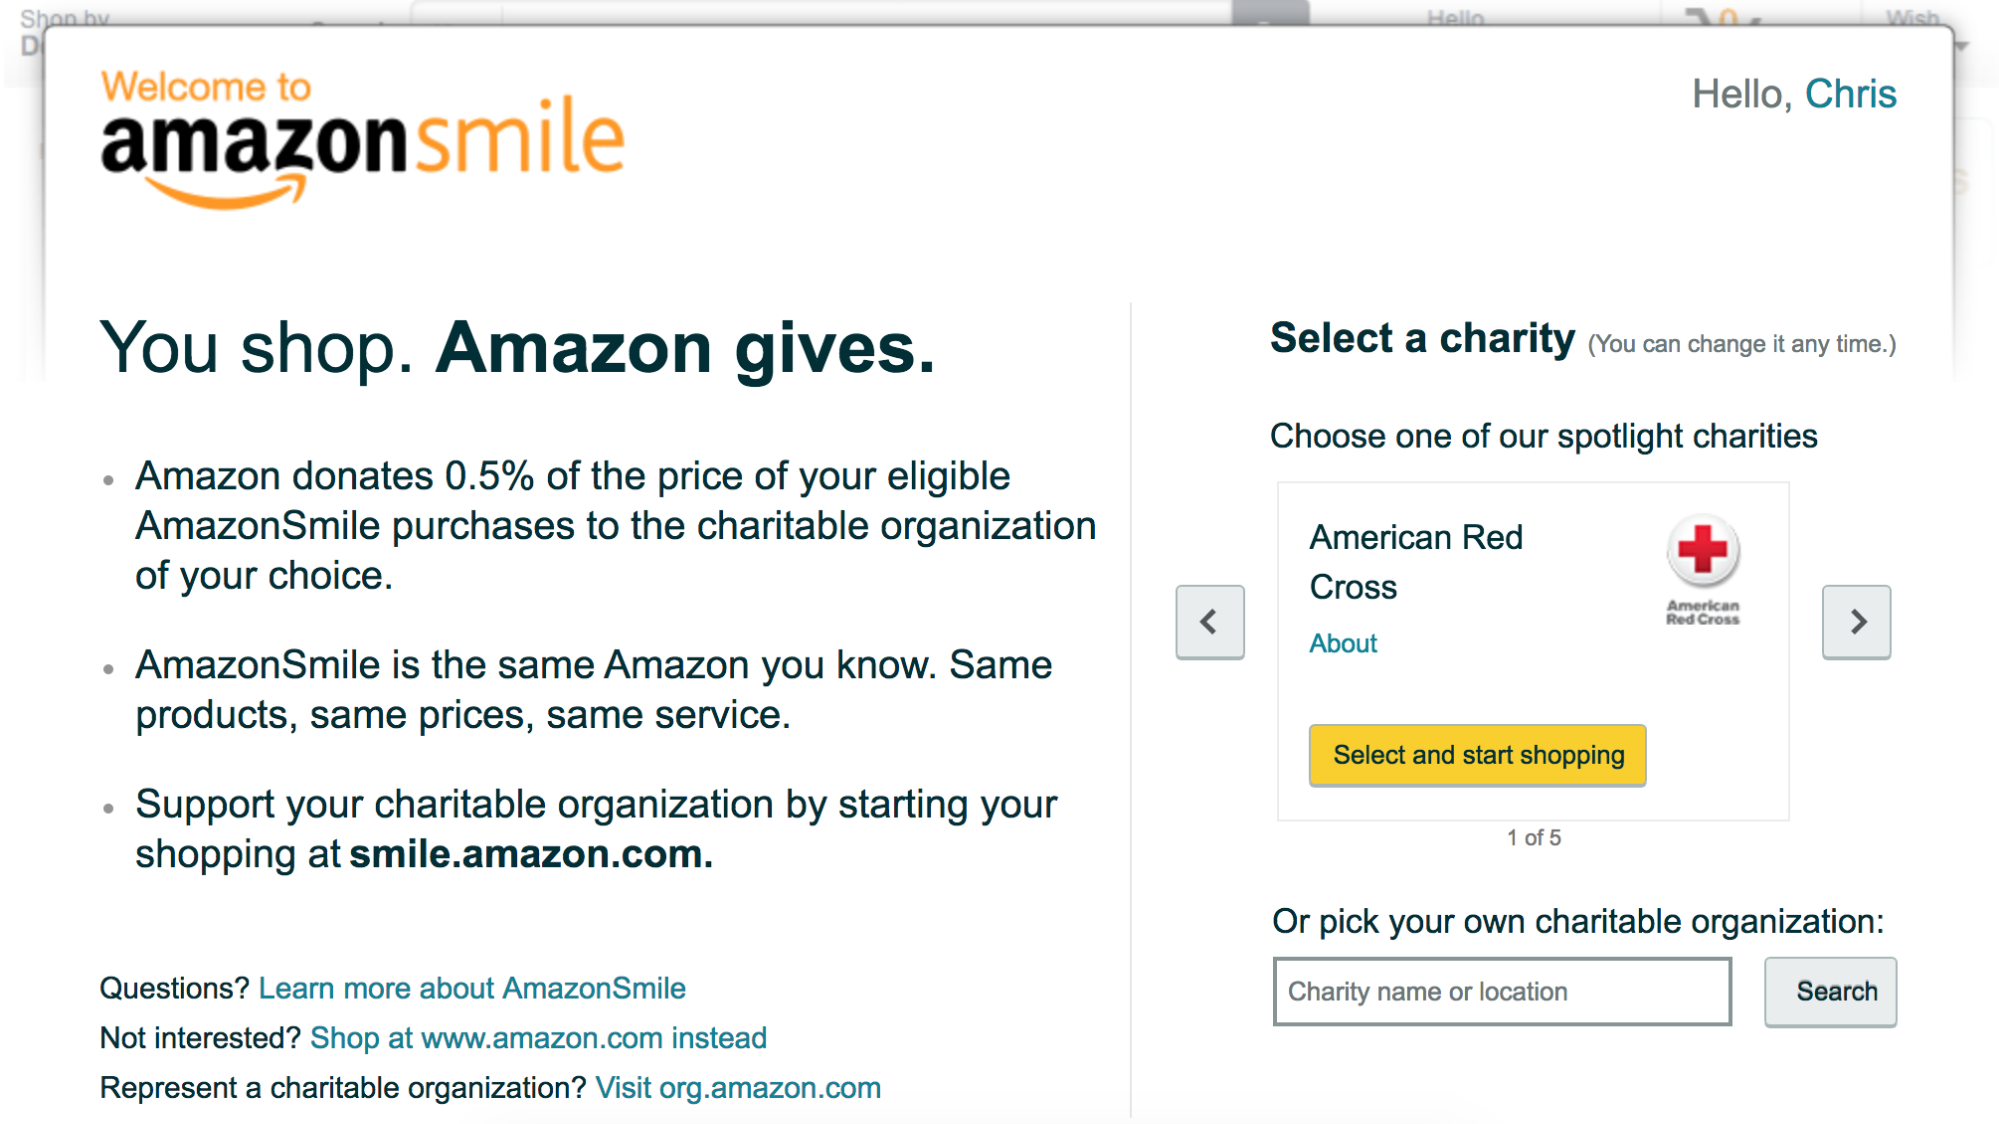 Screenshot showing an email about amazon smile